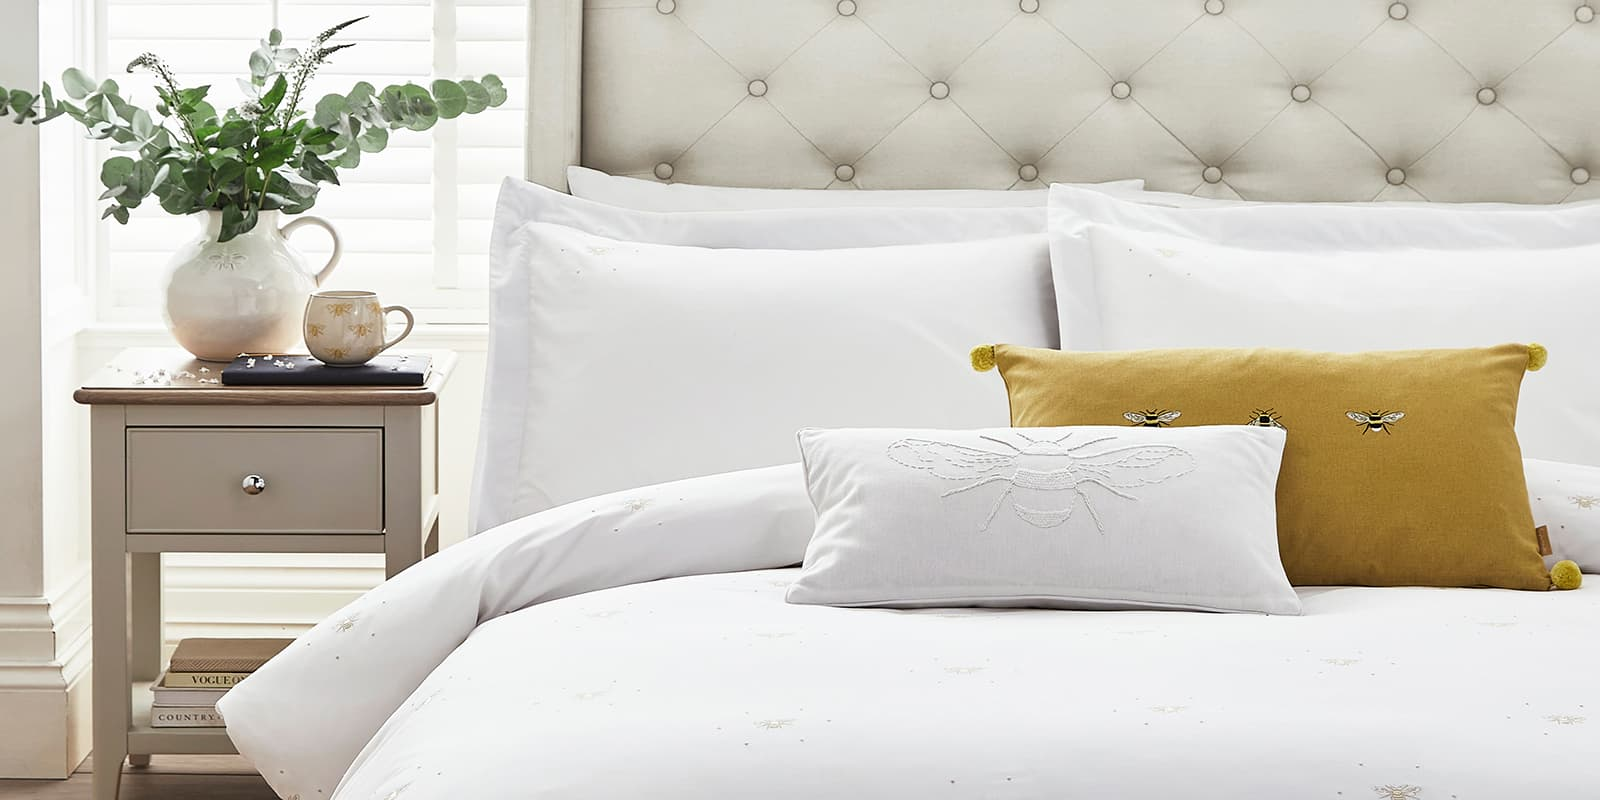 Countryside inspired bedding designs from Sophie Allport